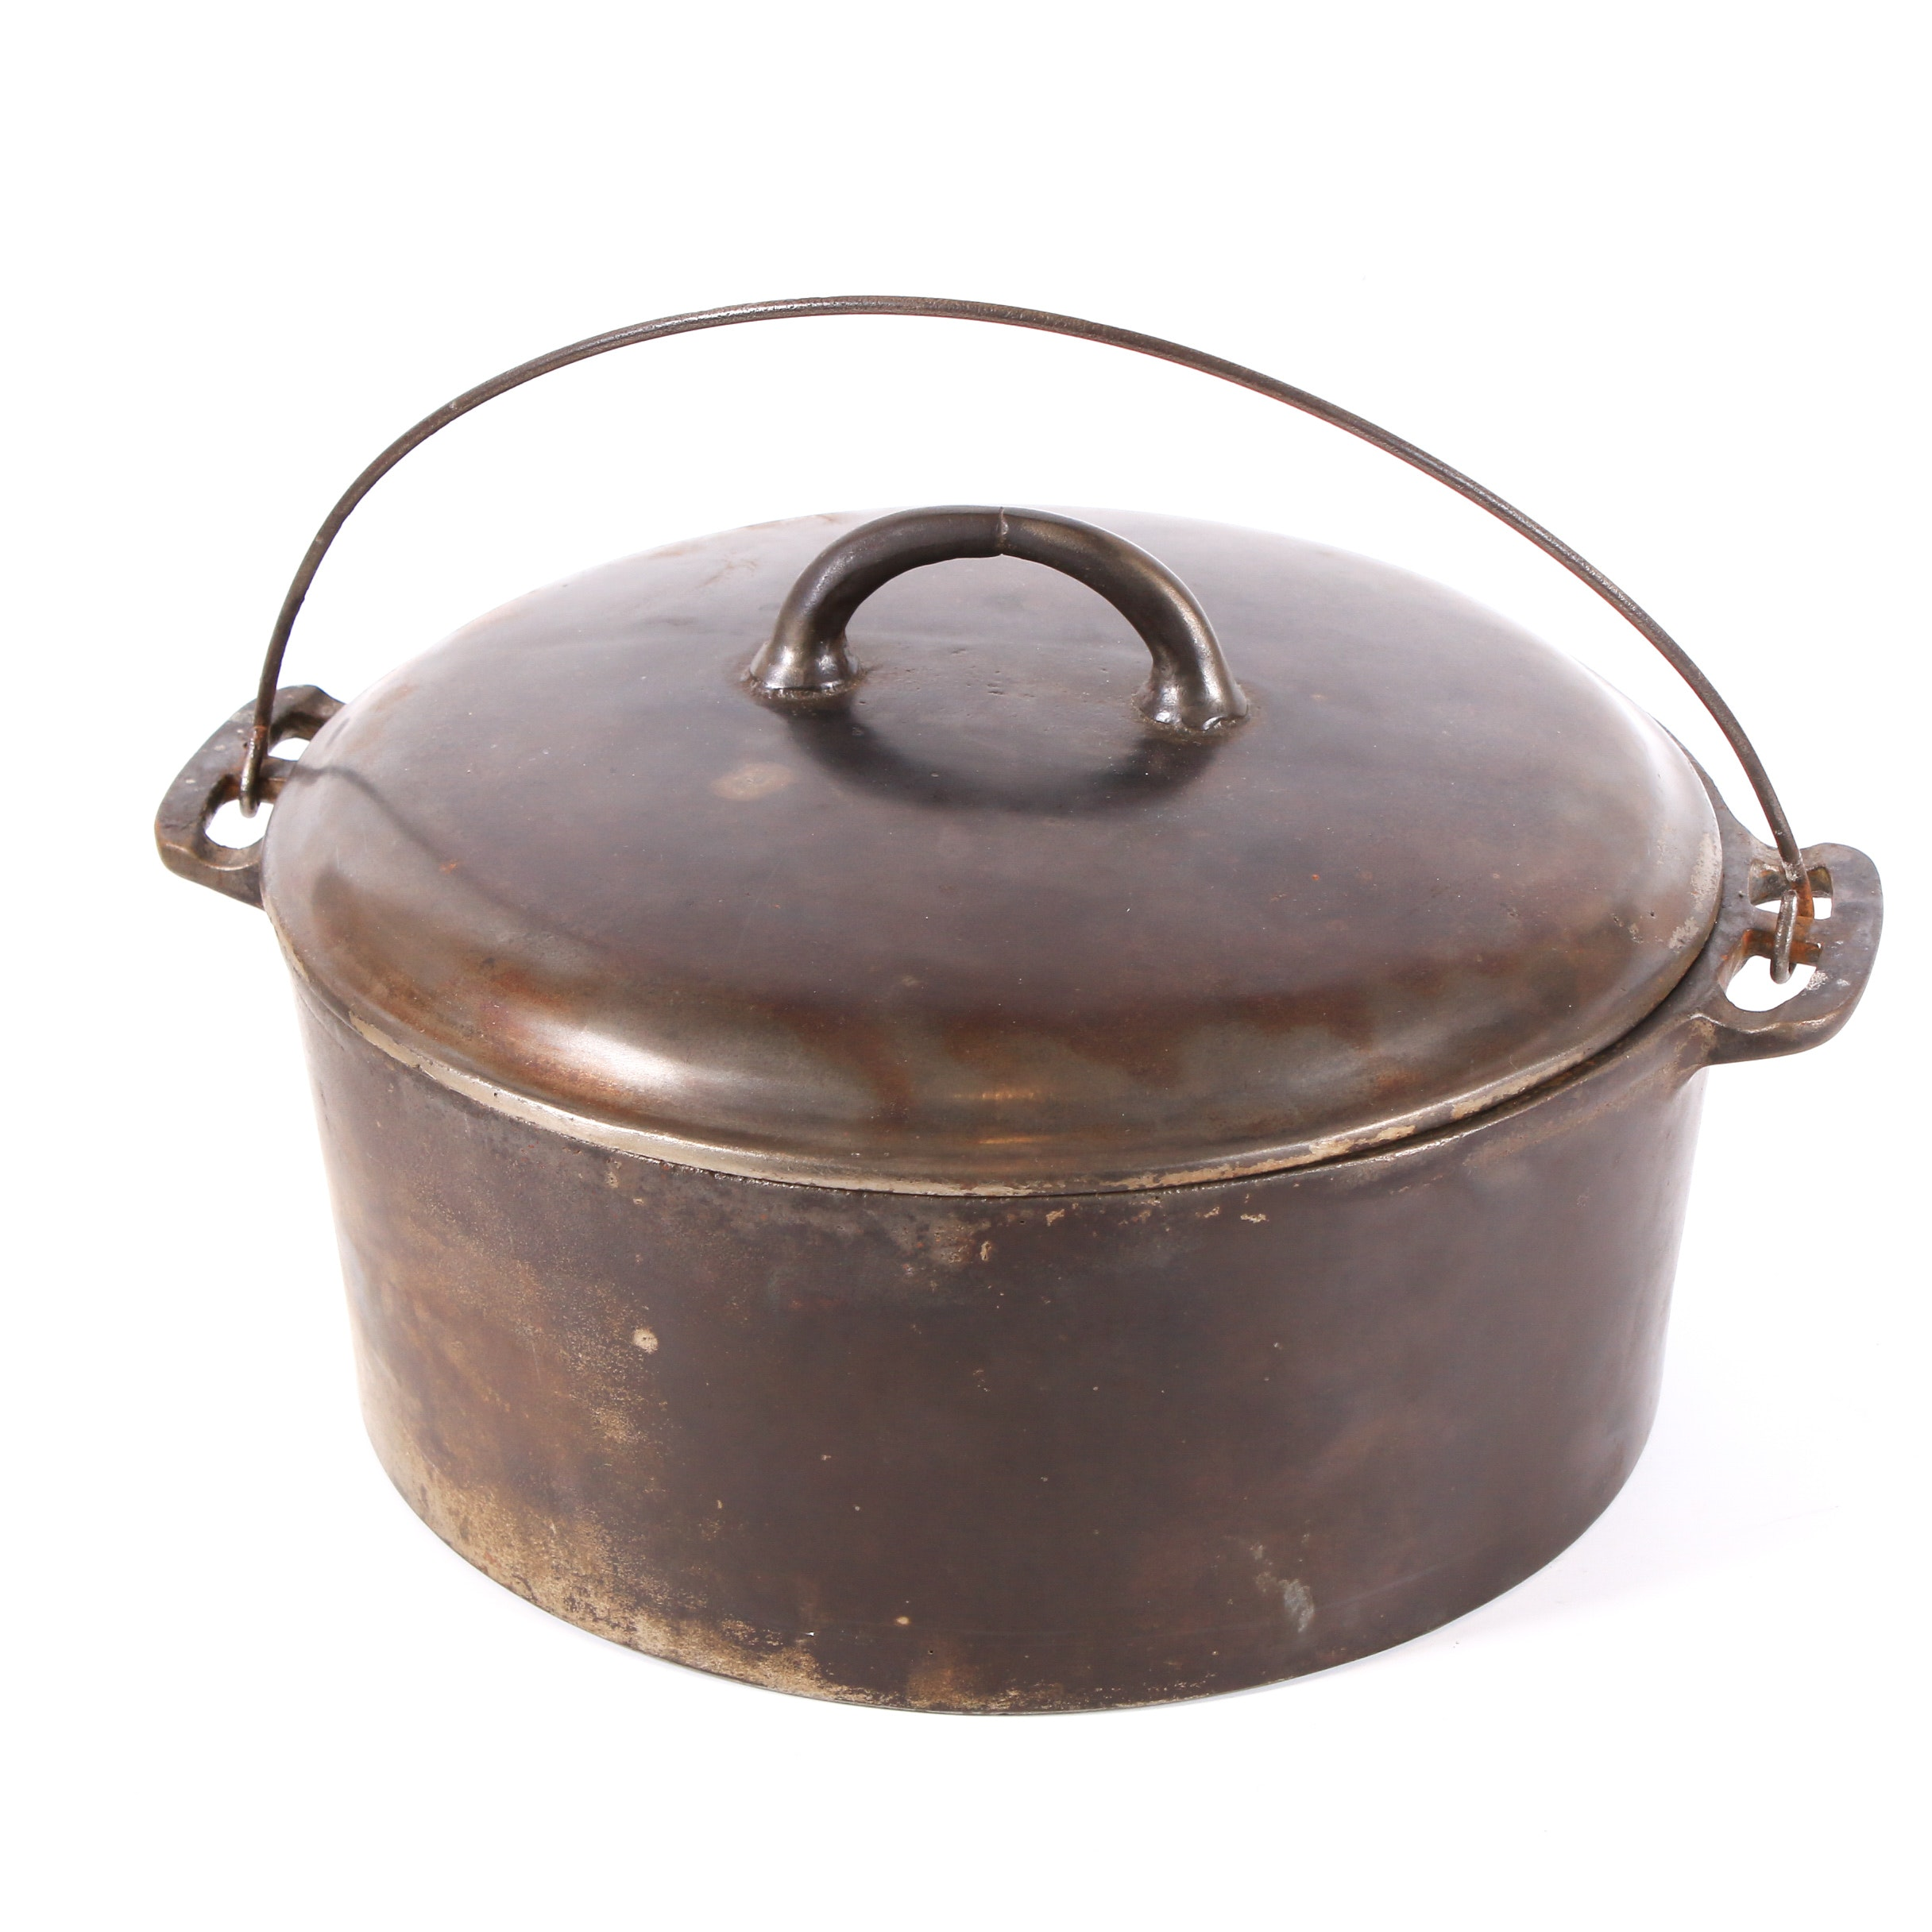 Cast Iron Dutch Oven, Late 19th/Early 20th Century